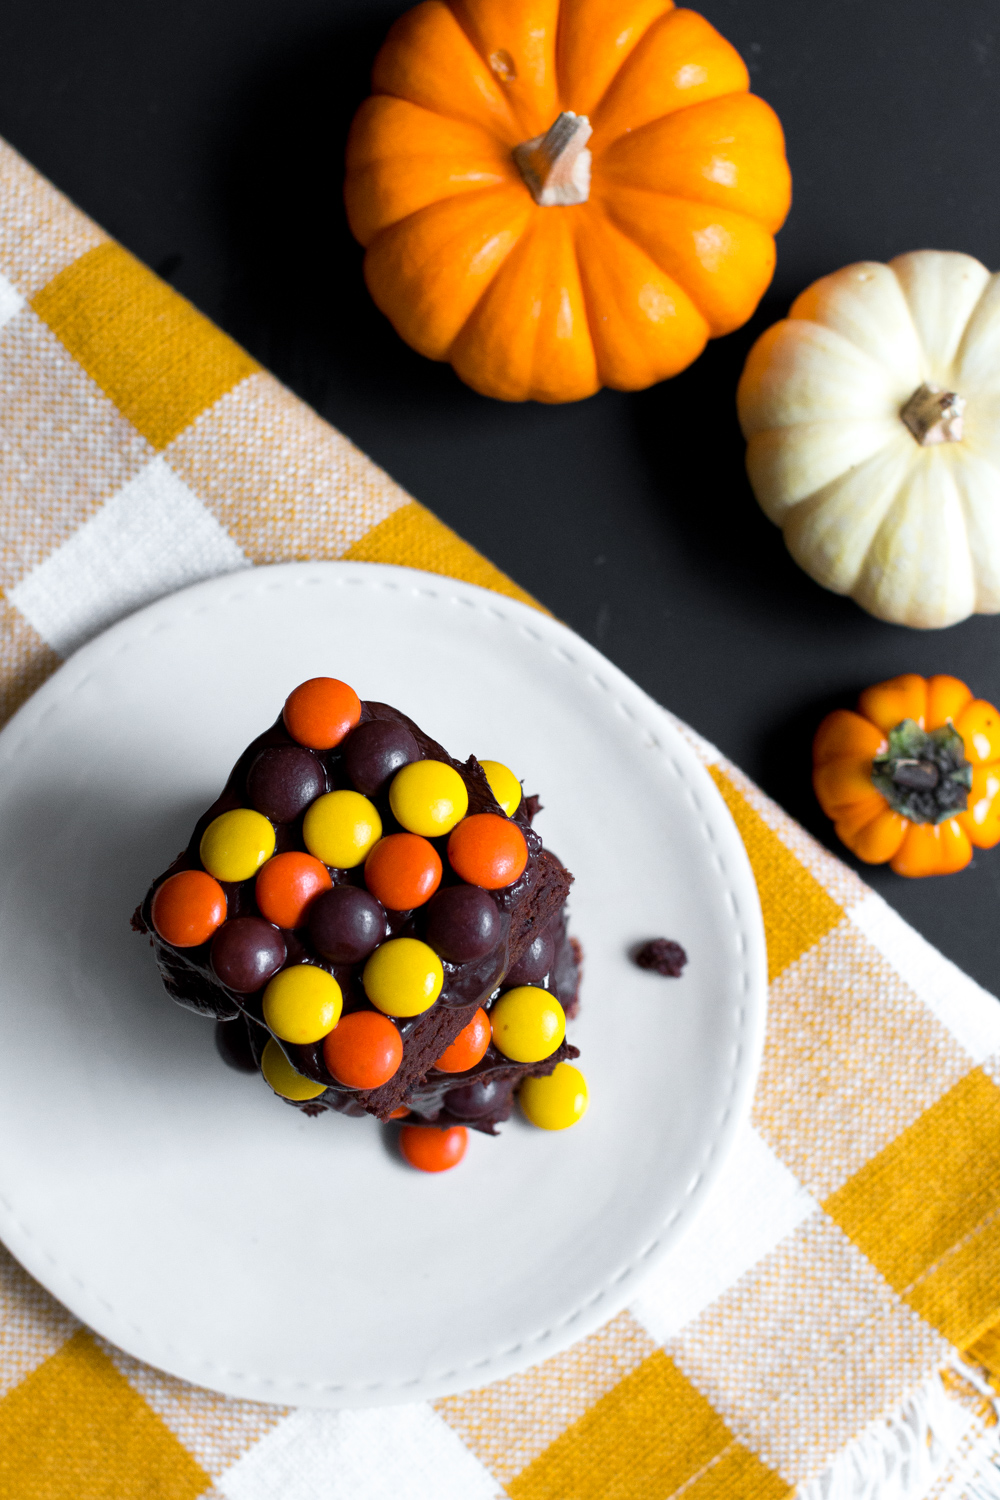 These Reese's Pieces Brownies scream Halloween!